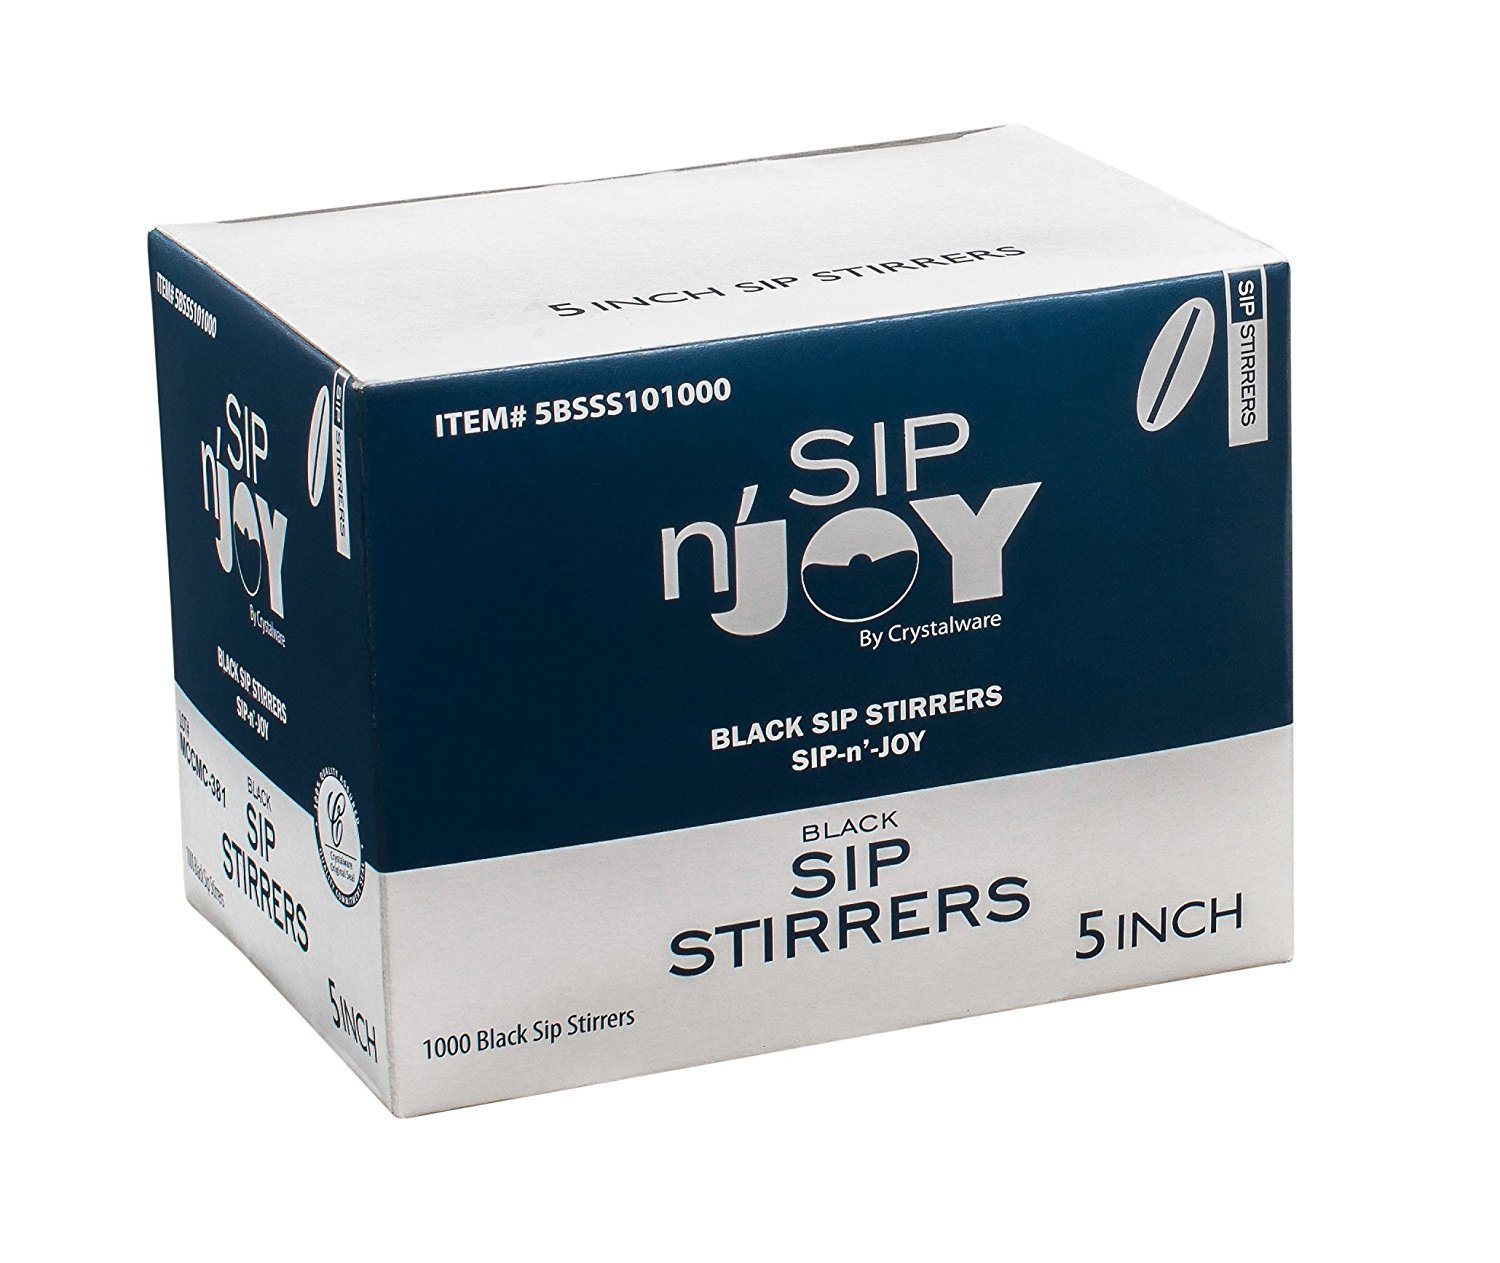 Crystalware Plastic Sip Stirrers 5 Inch 1000/box, Black (10 Boxes)